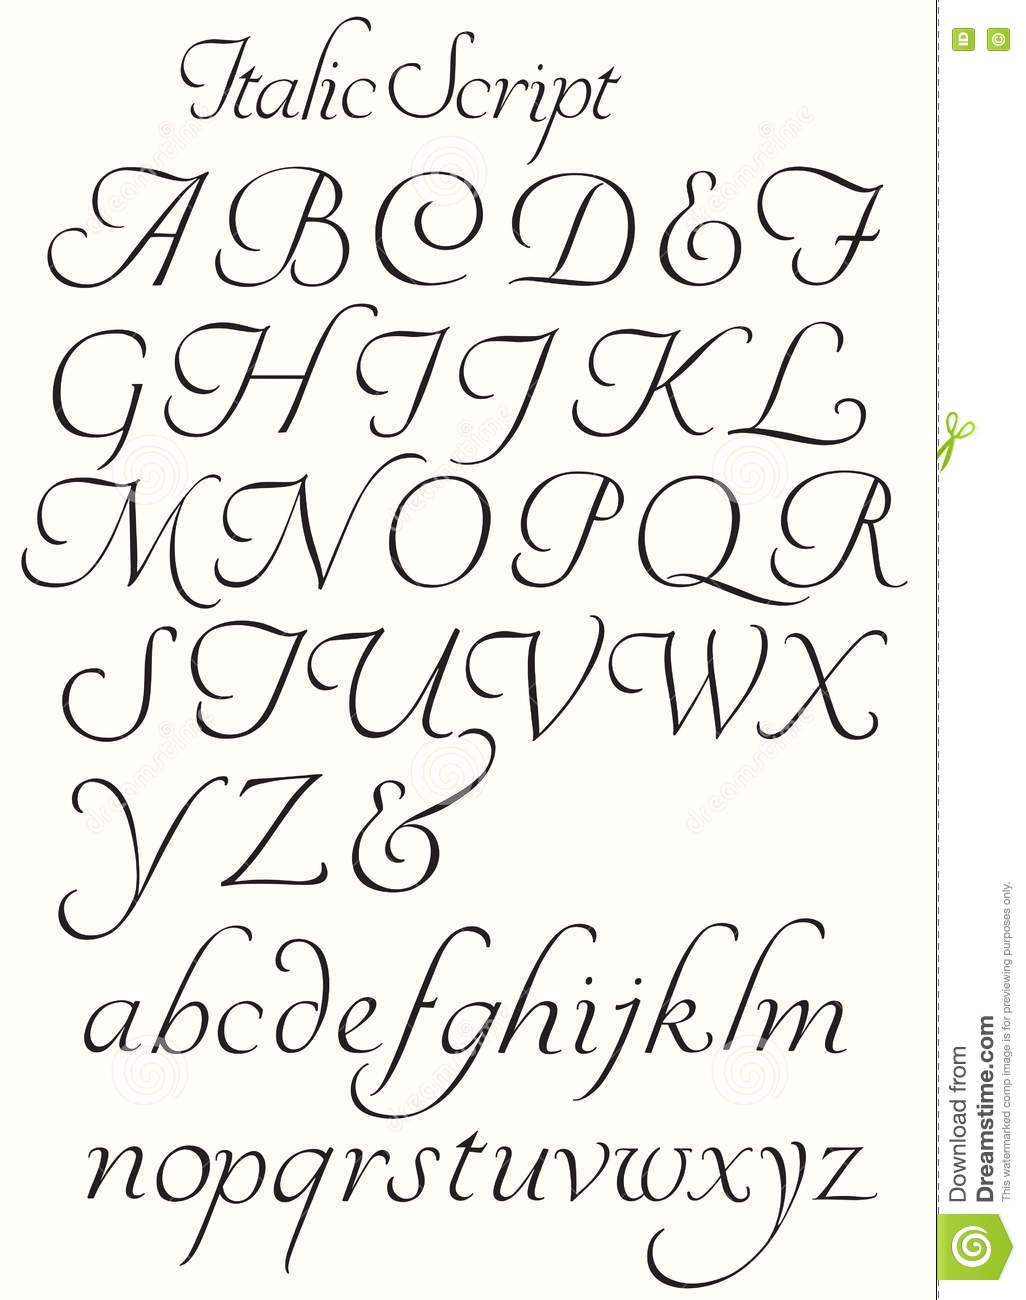 Italic Script Alphabet Capitals And Small Letters